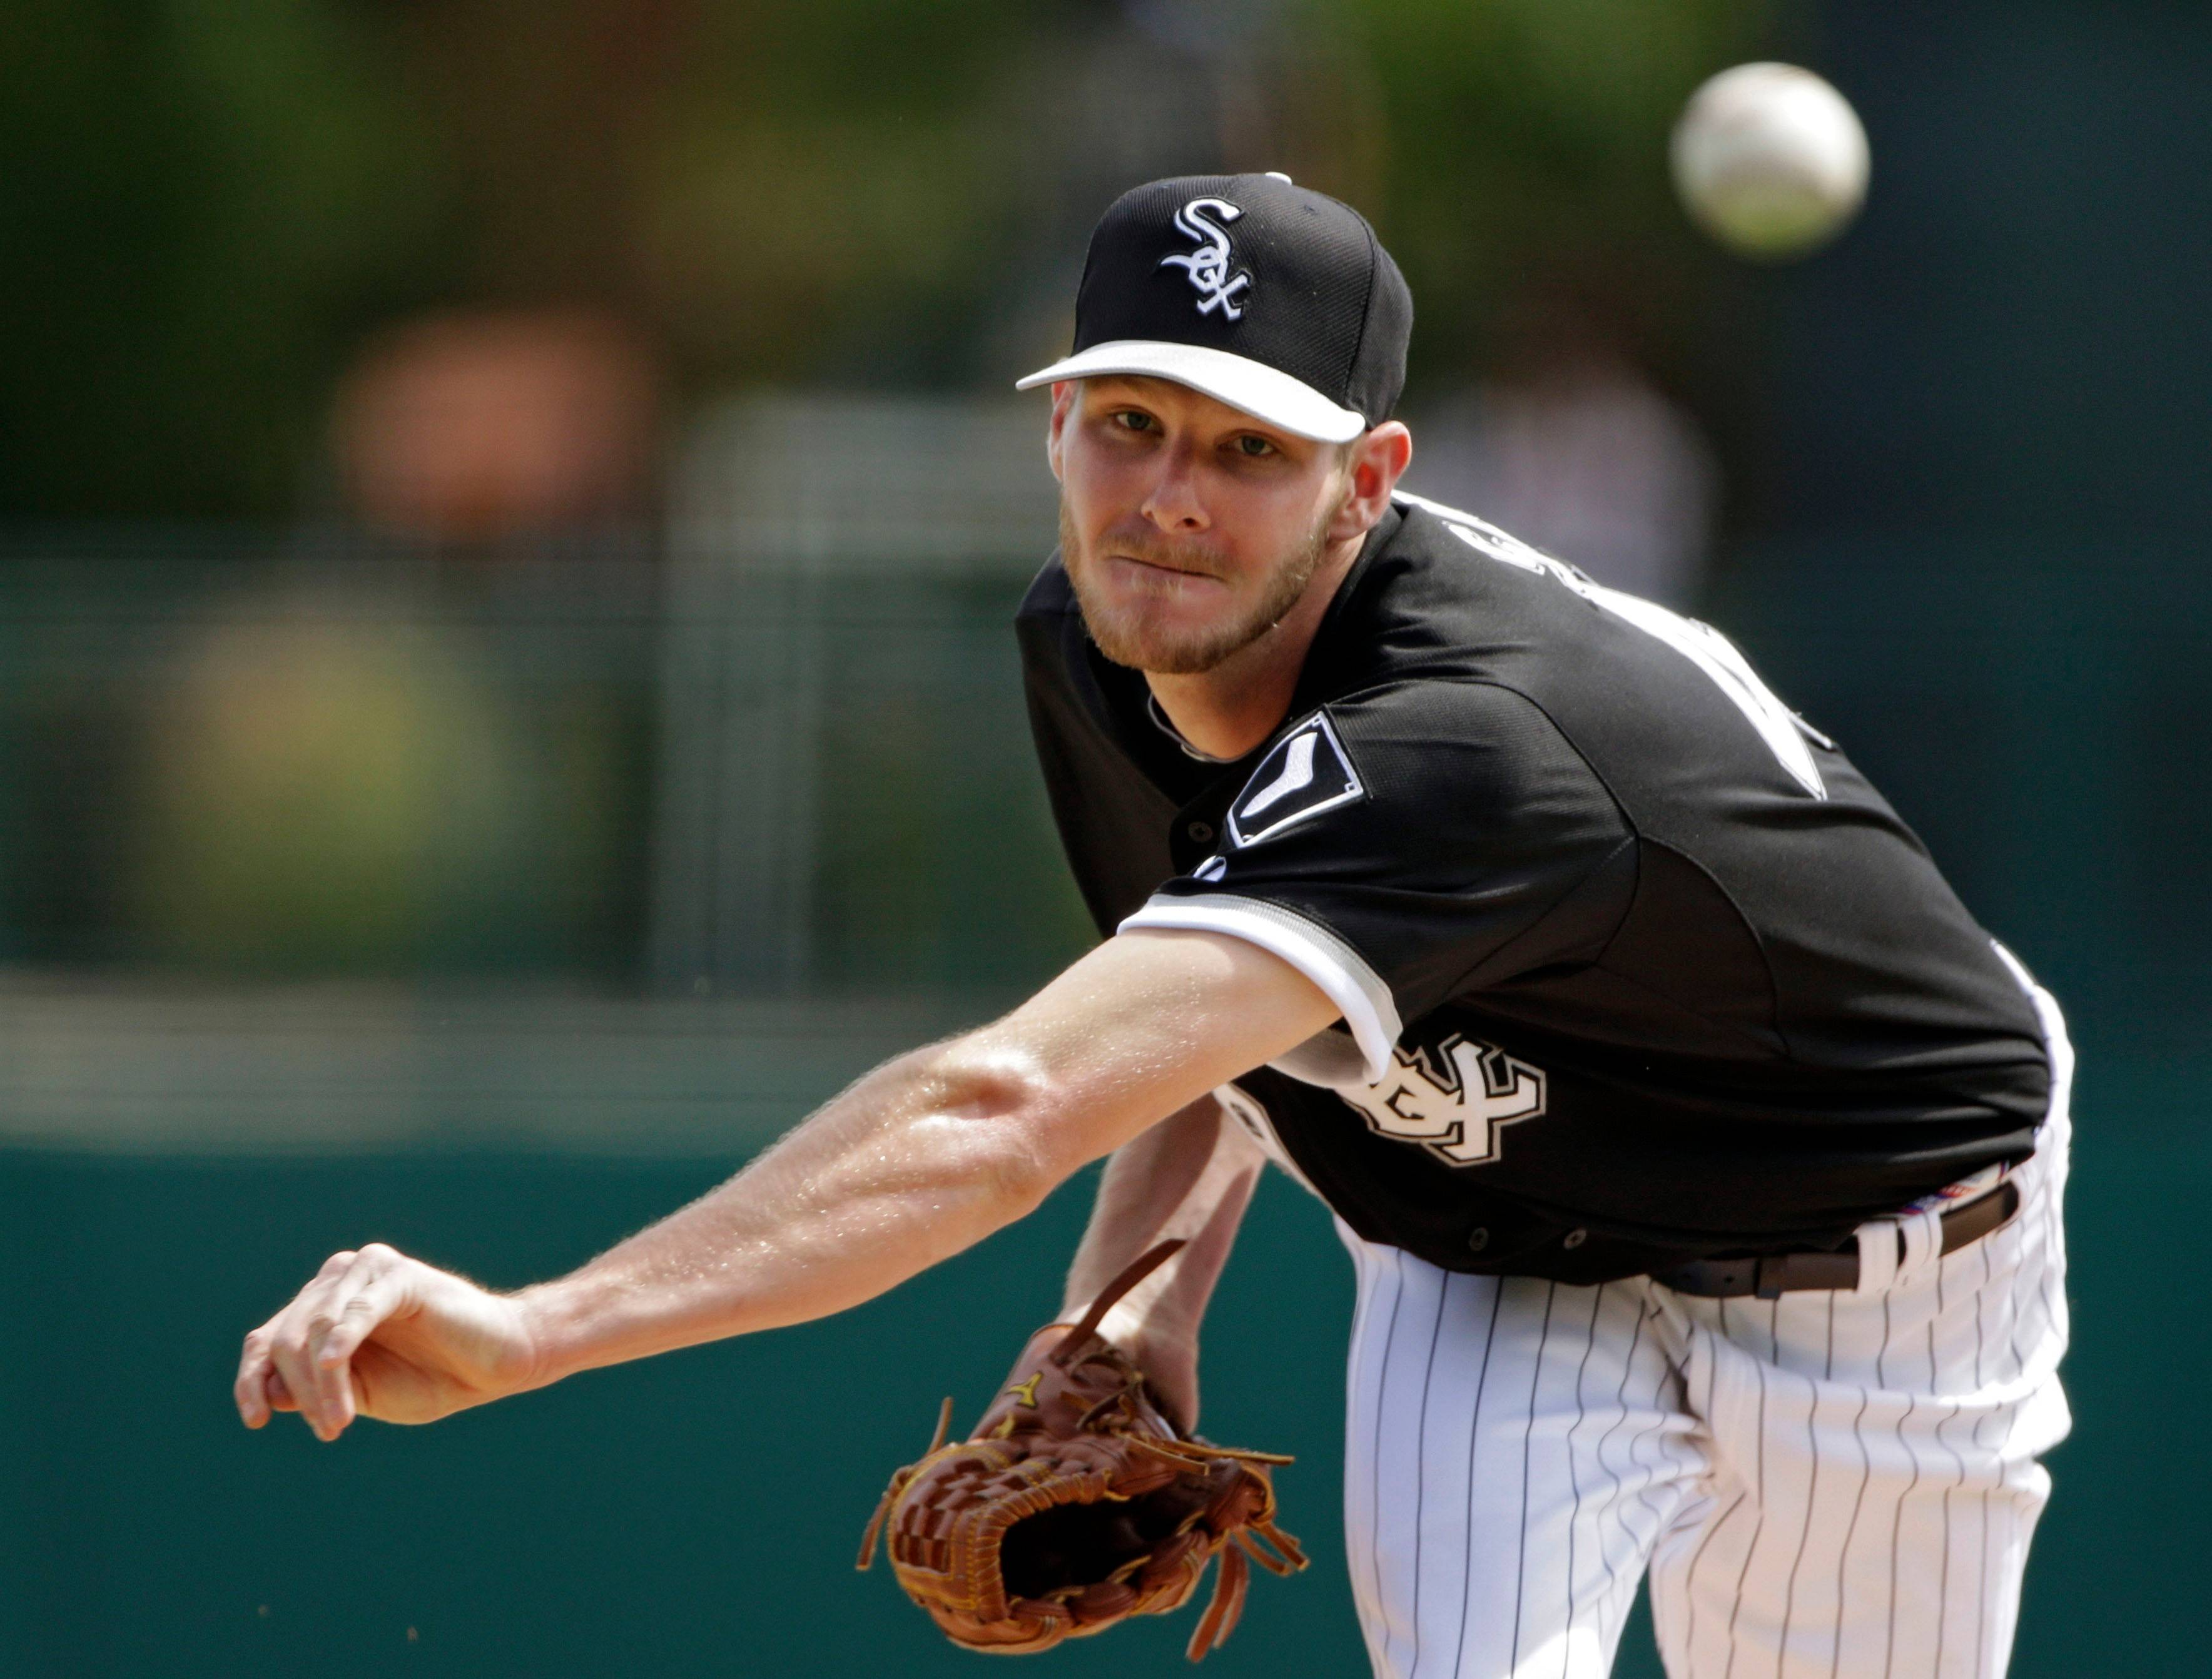 In his second full year in the rotation, Chris Sale's 11-14 record in 2013 was a harsh reflection of the Sox' 63-99 season. But he tied for the American League lead with 4 complete games, was third in strikeouts (226) and WHIP (1.07), fourth in quality starts (23), fifth in innings pitched (214.1) and seventh in ERA (3.07).